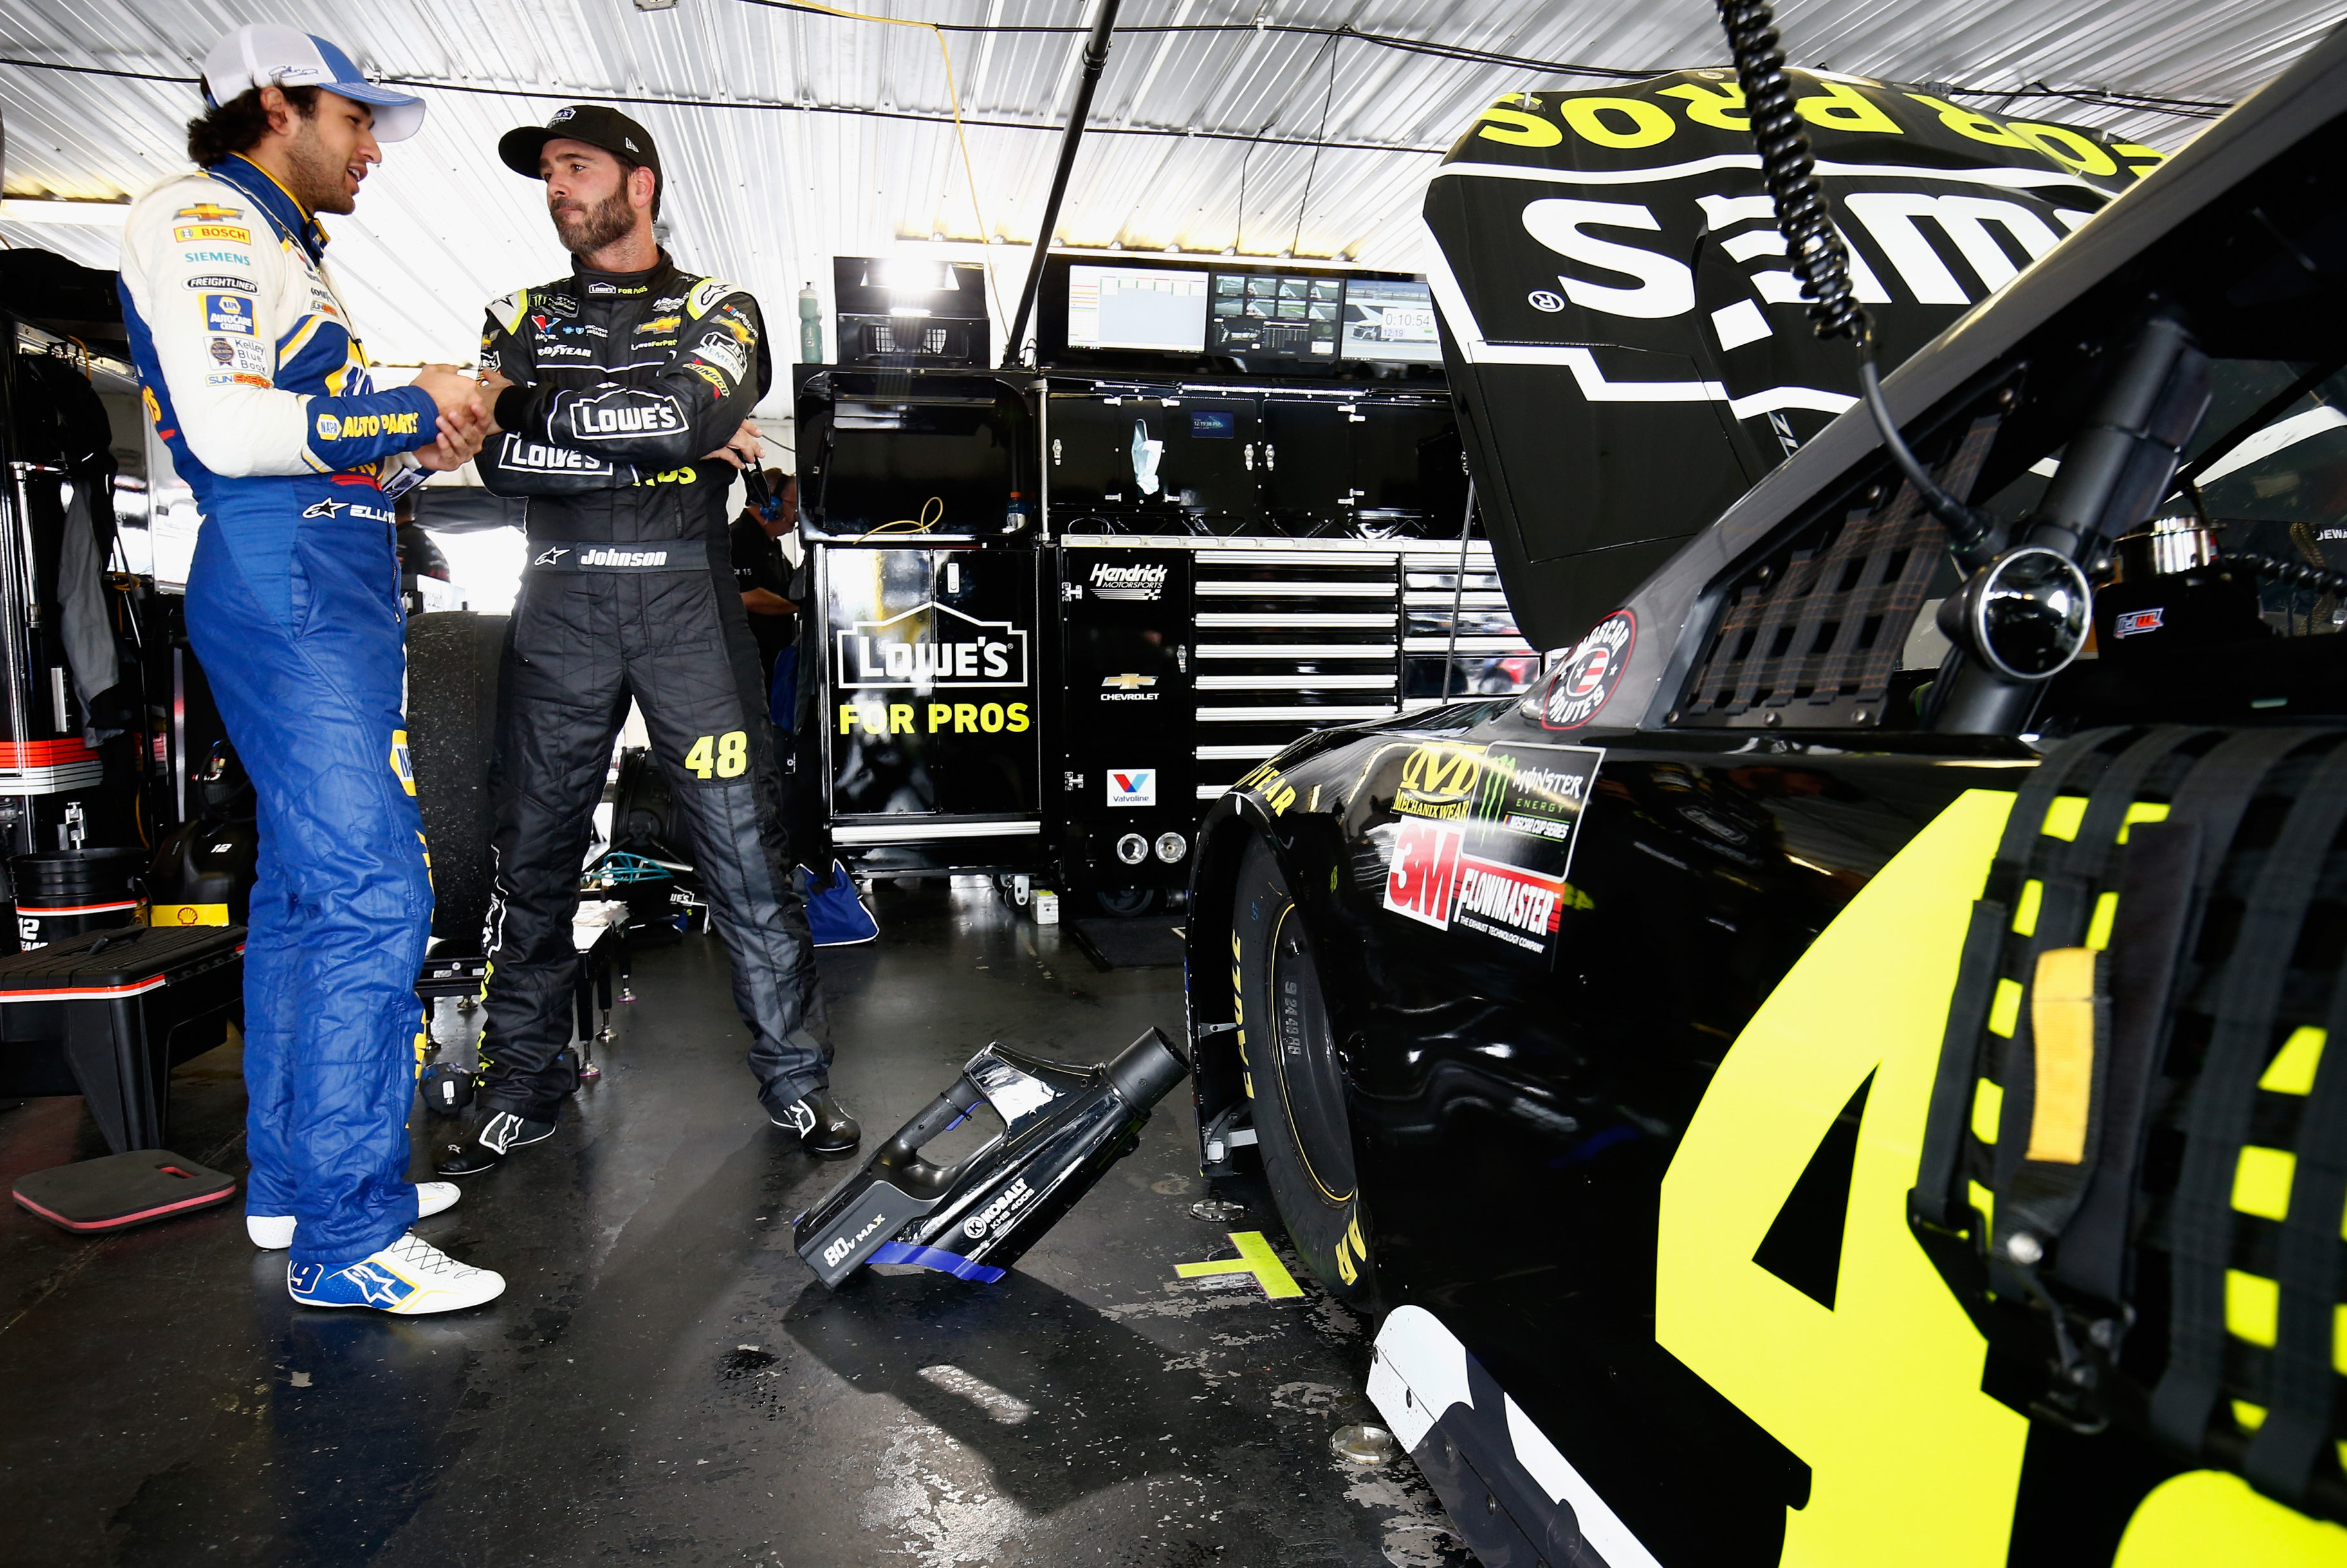 Chase Elliott and Jimmie Johnson in the NASCAR garage